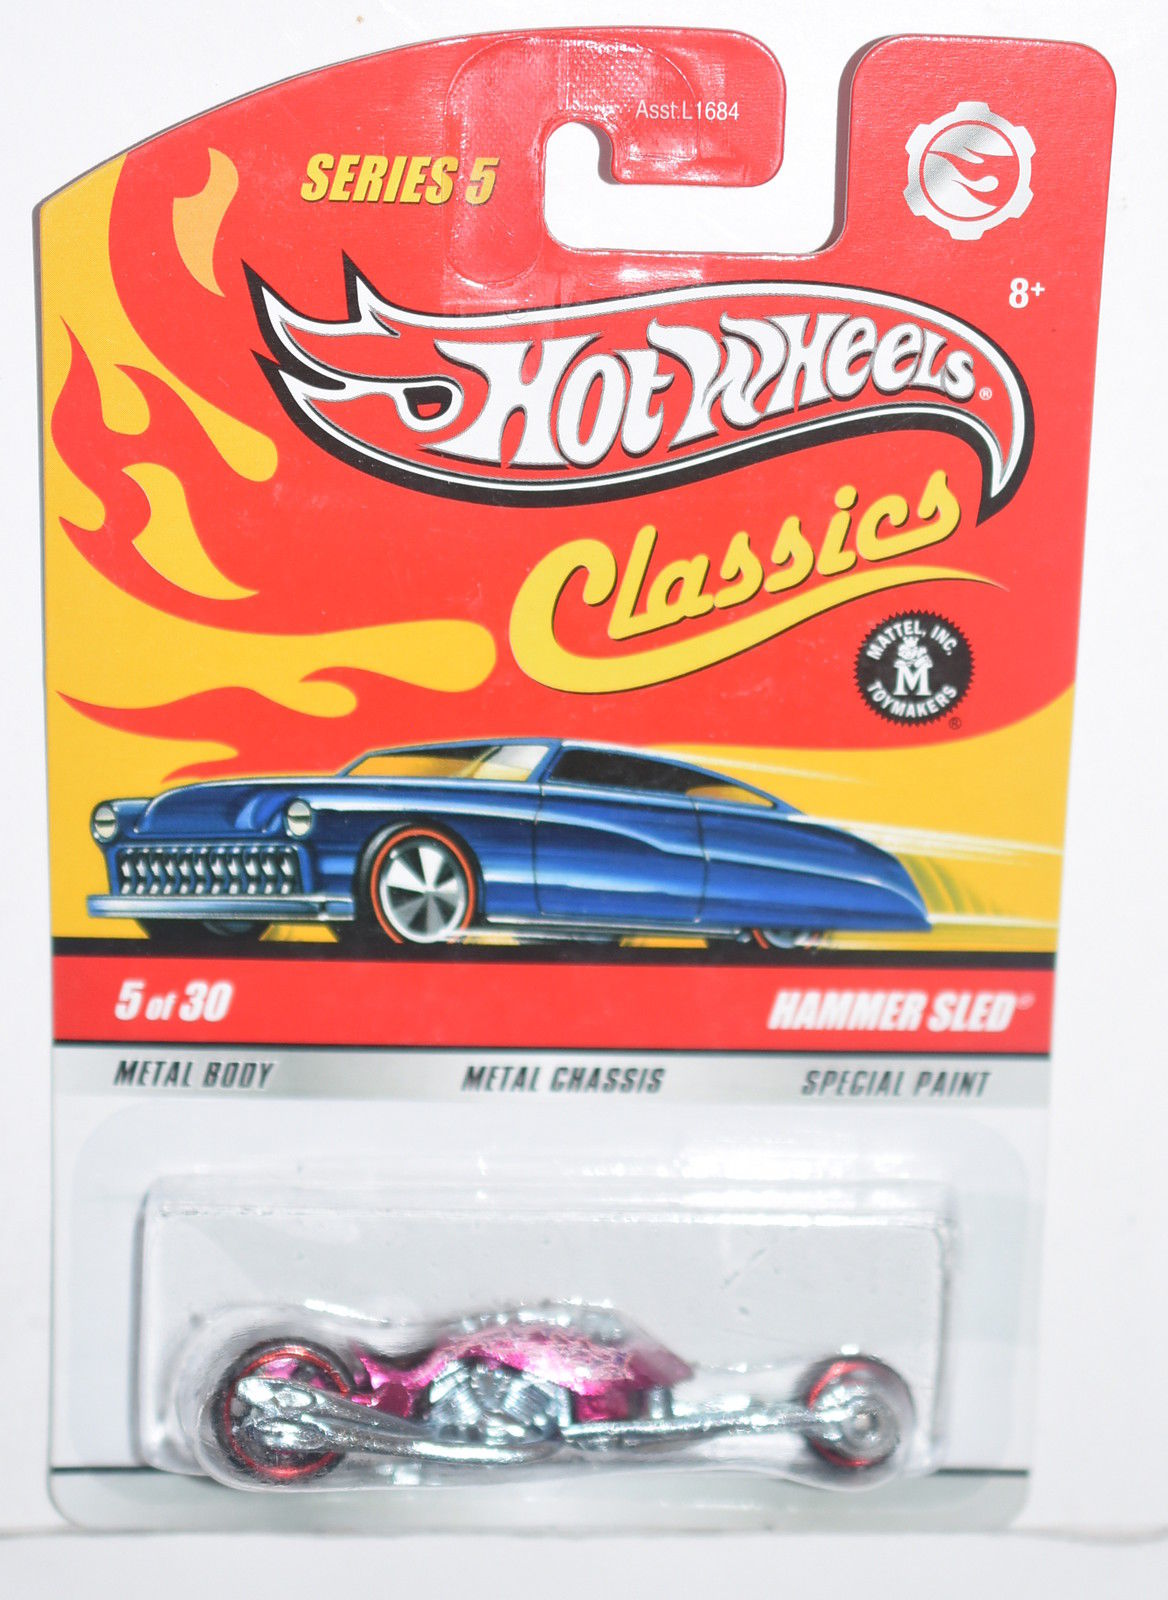 HOT WHEELS CLASSICS SERIES 5 #5/30 - HAMMER SLED